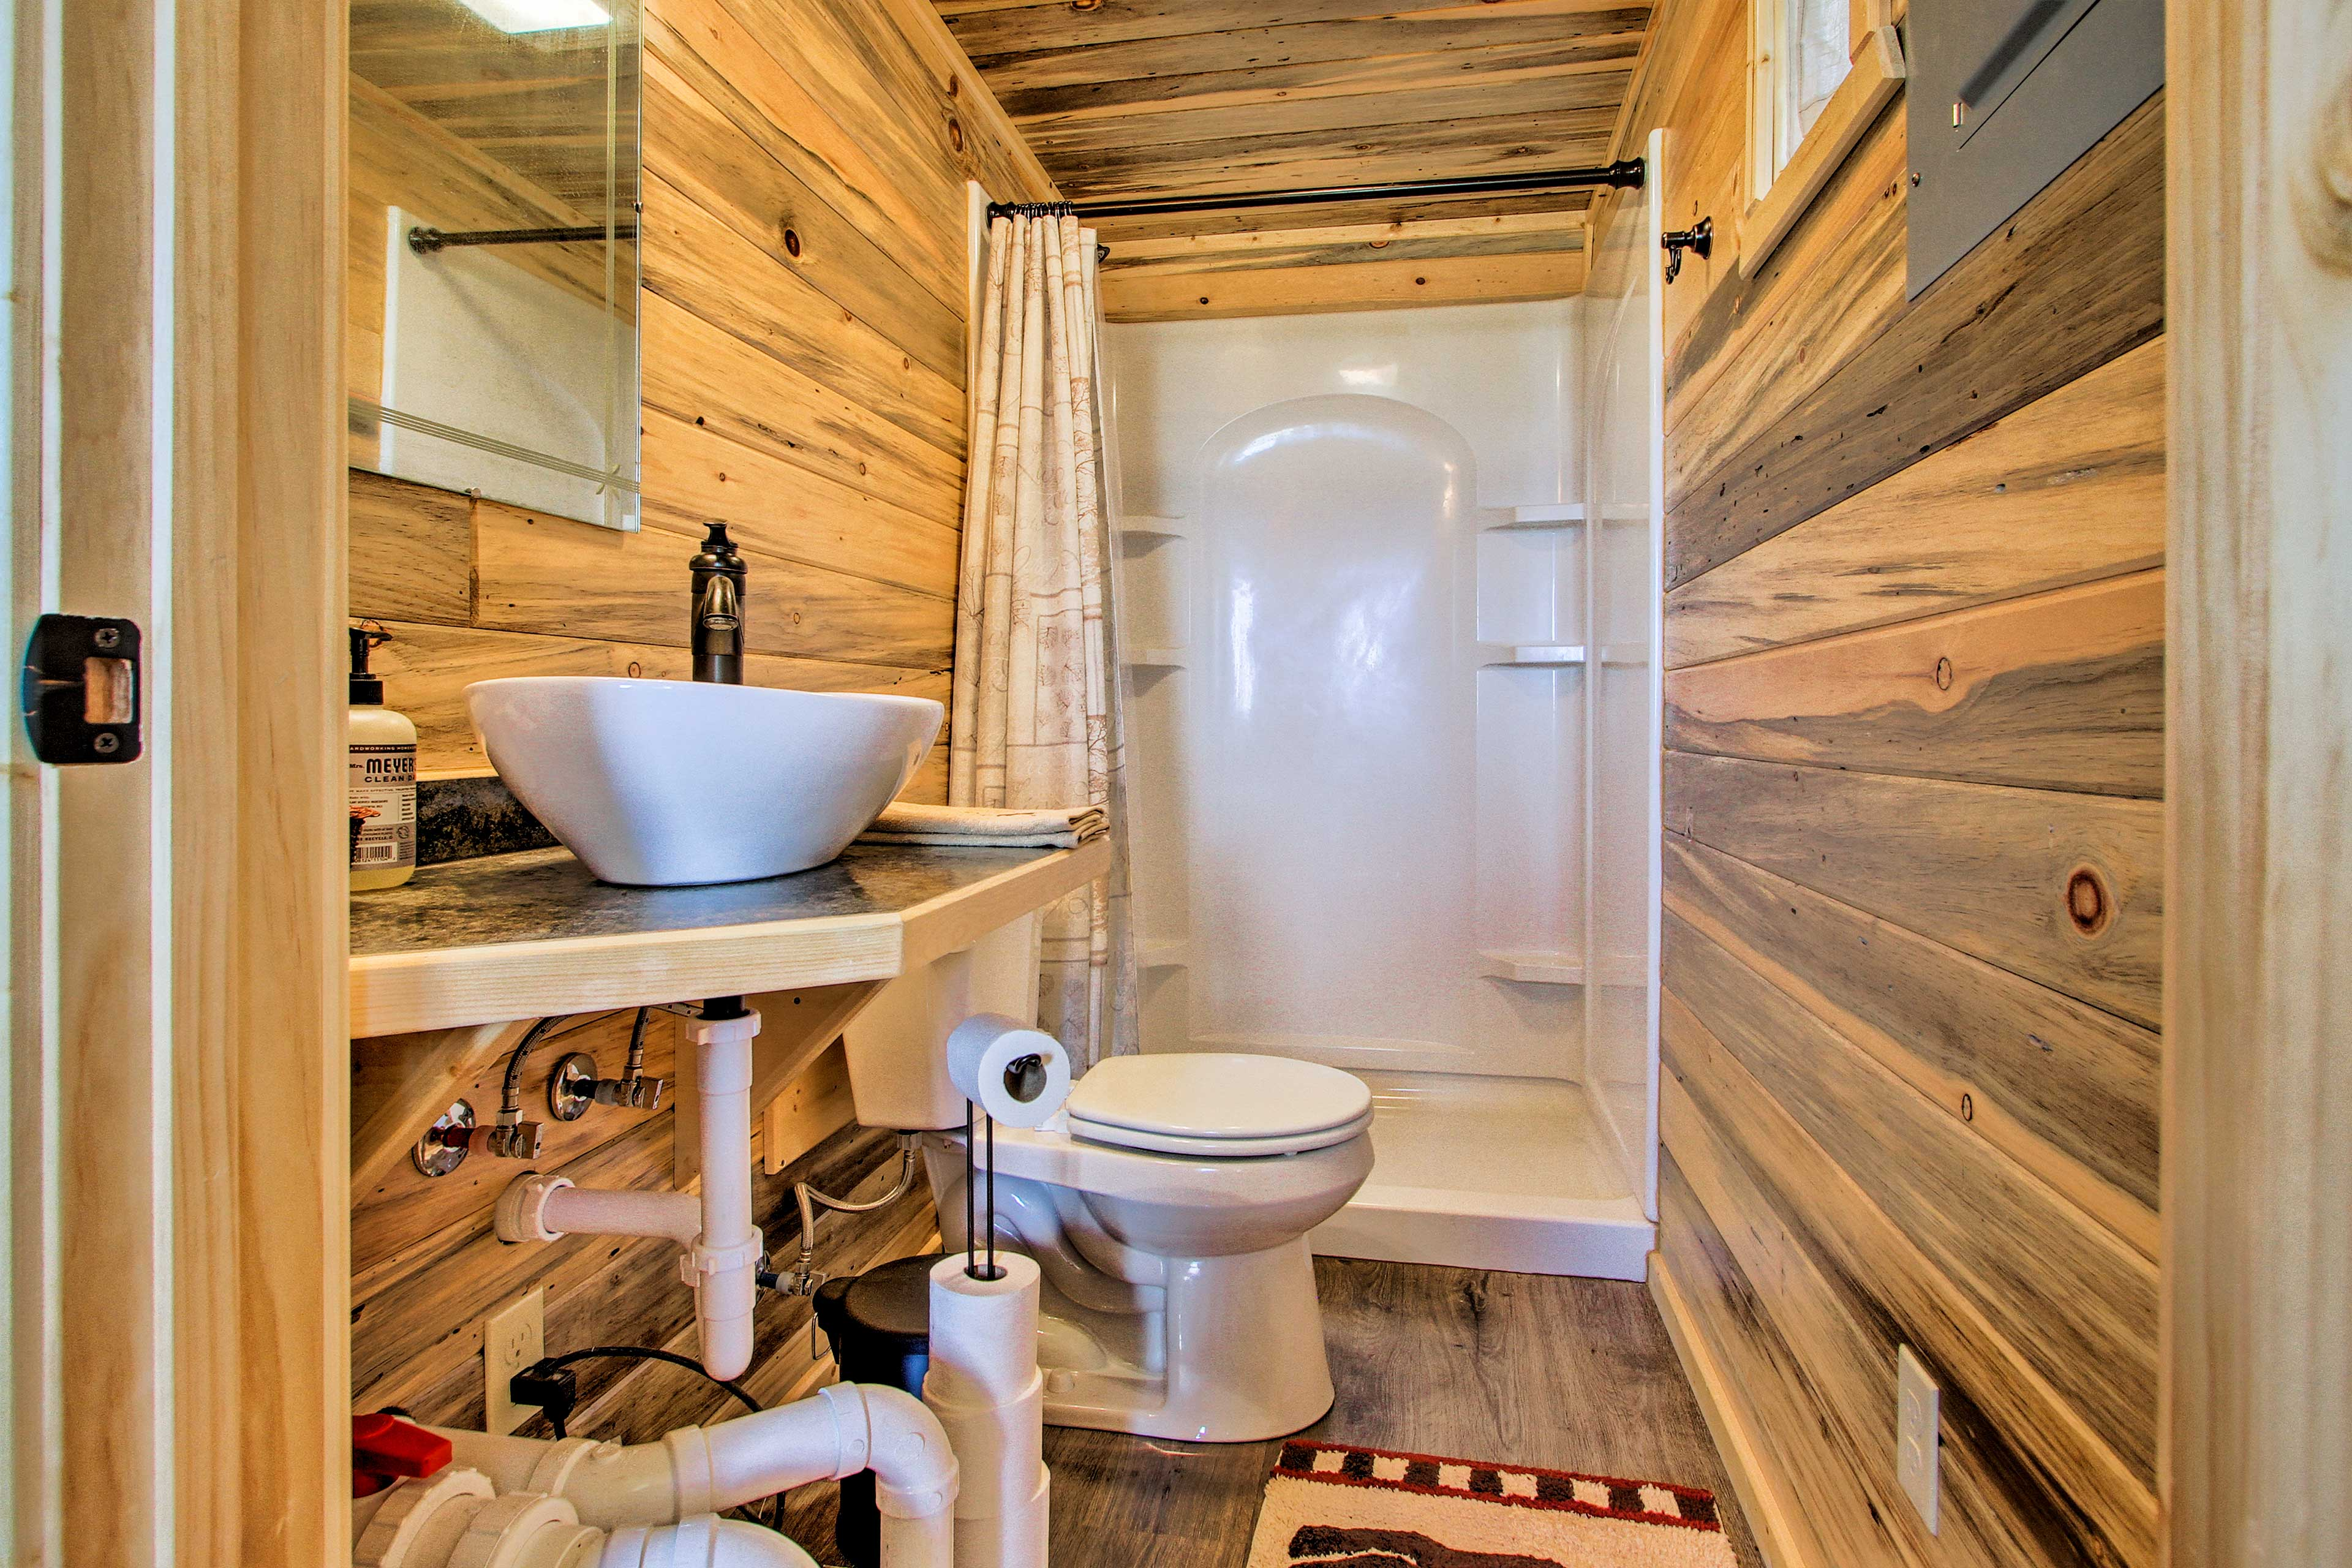 There is one full bathroom in this home.